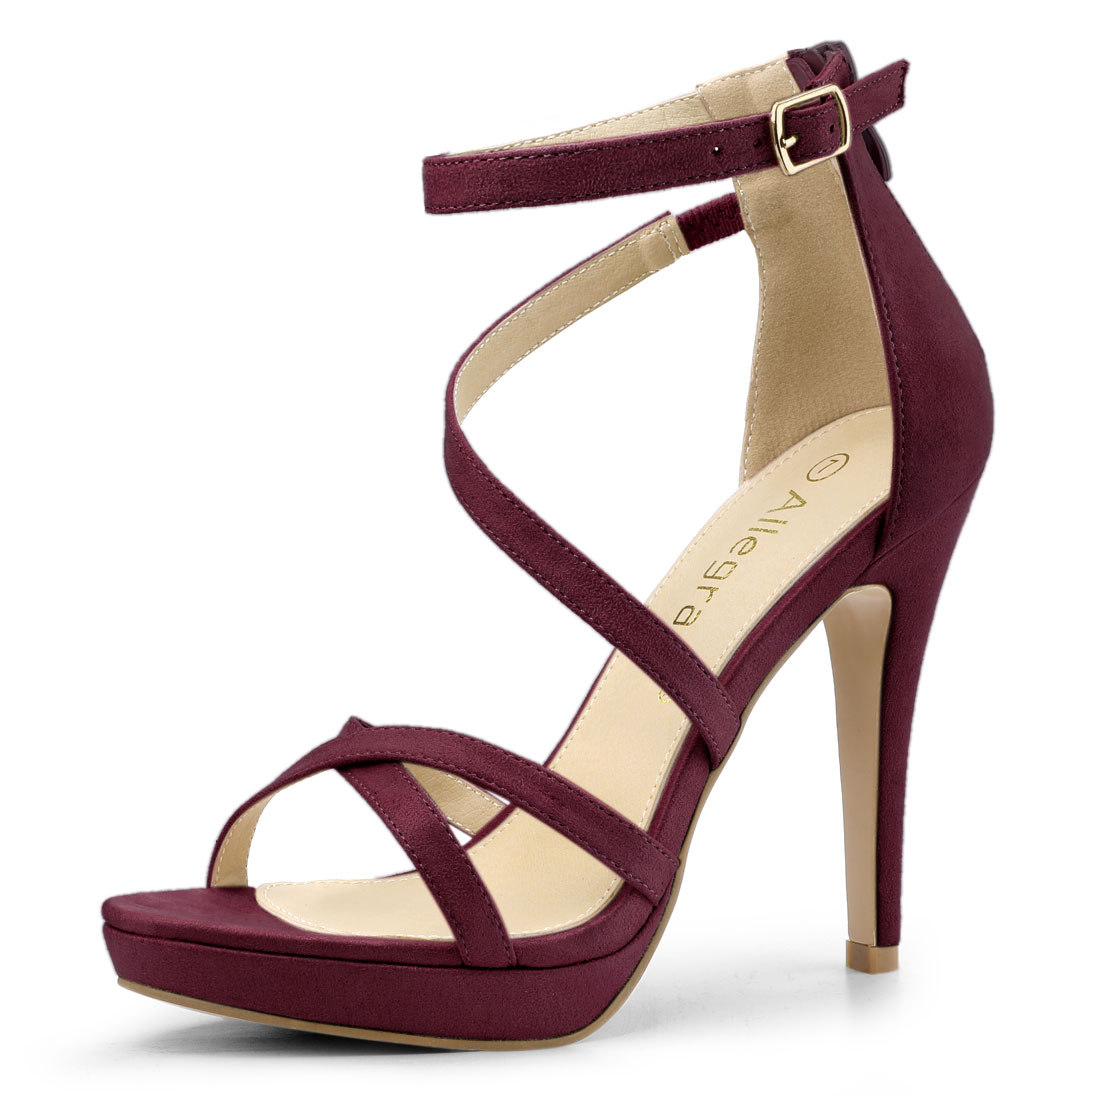 Allegra K Women's Strappy Platform Stiletto Heels Sandals Burgundy US 7.5